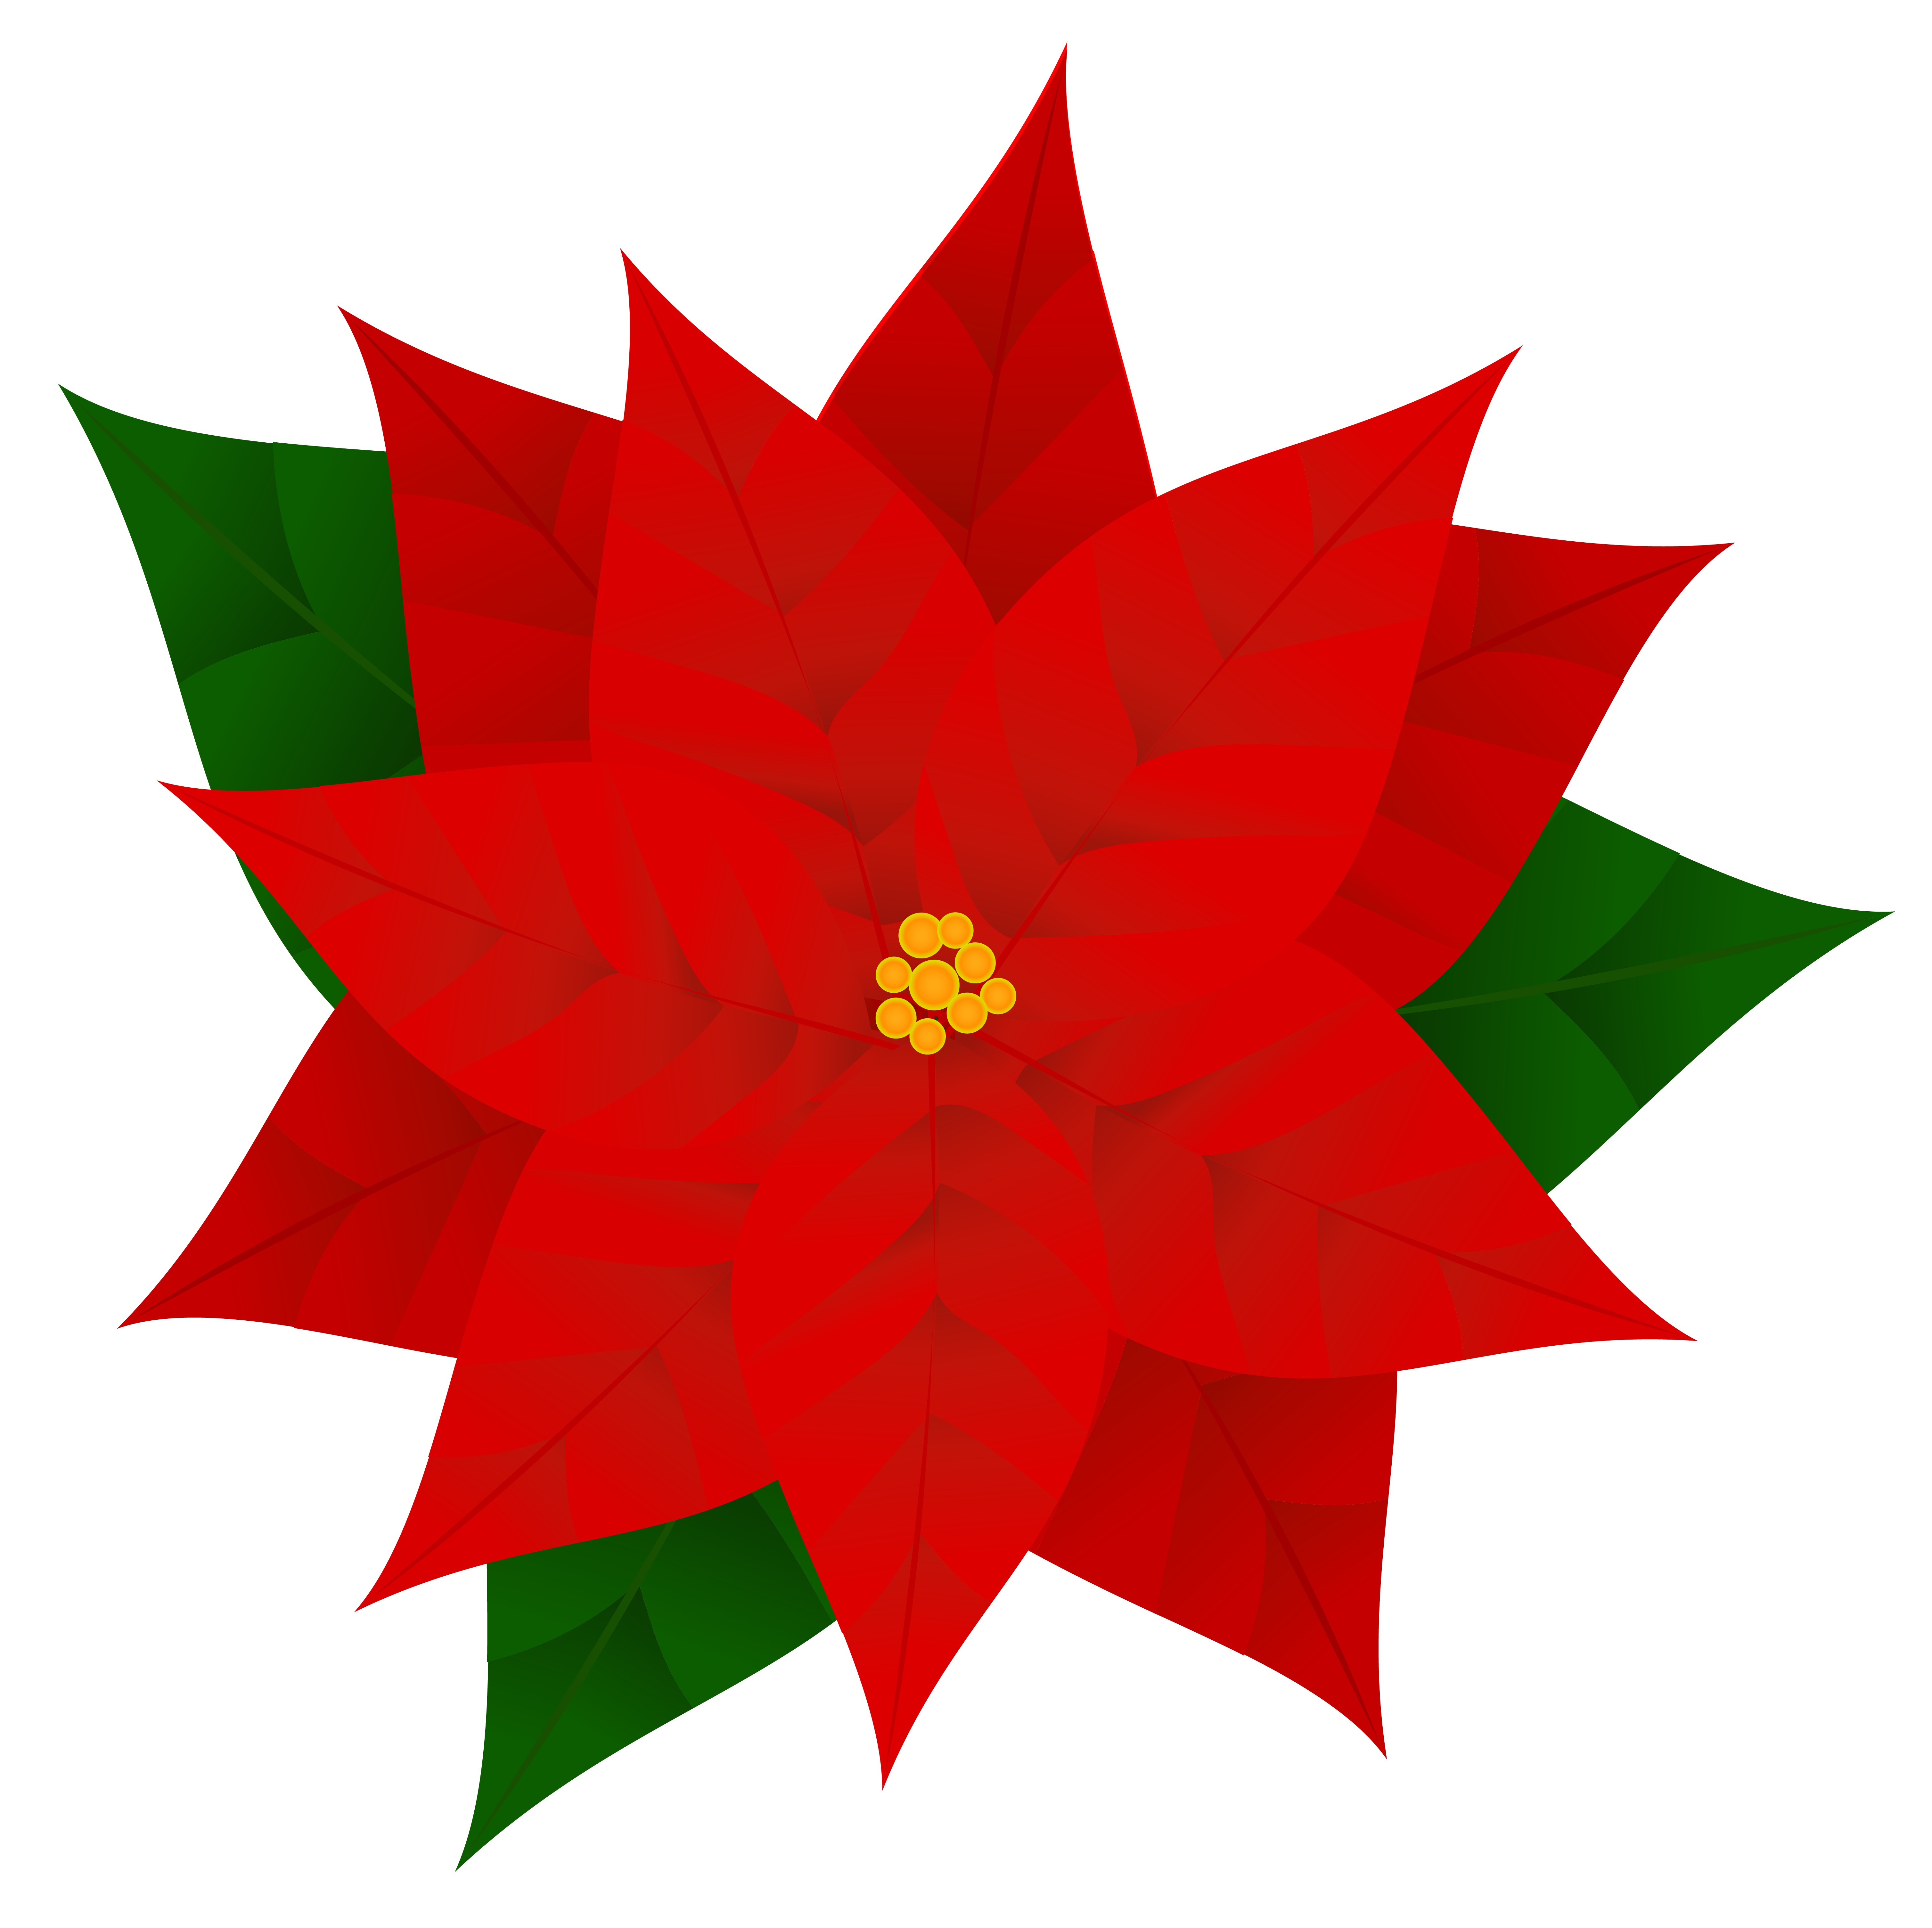 Free poinsettias cliparts download. Poinsetta clip jpg free stock